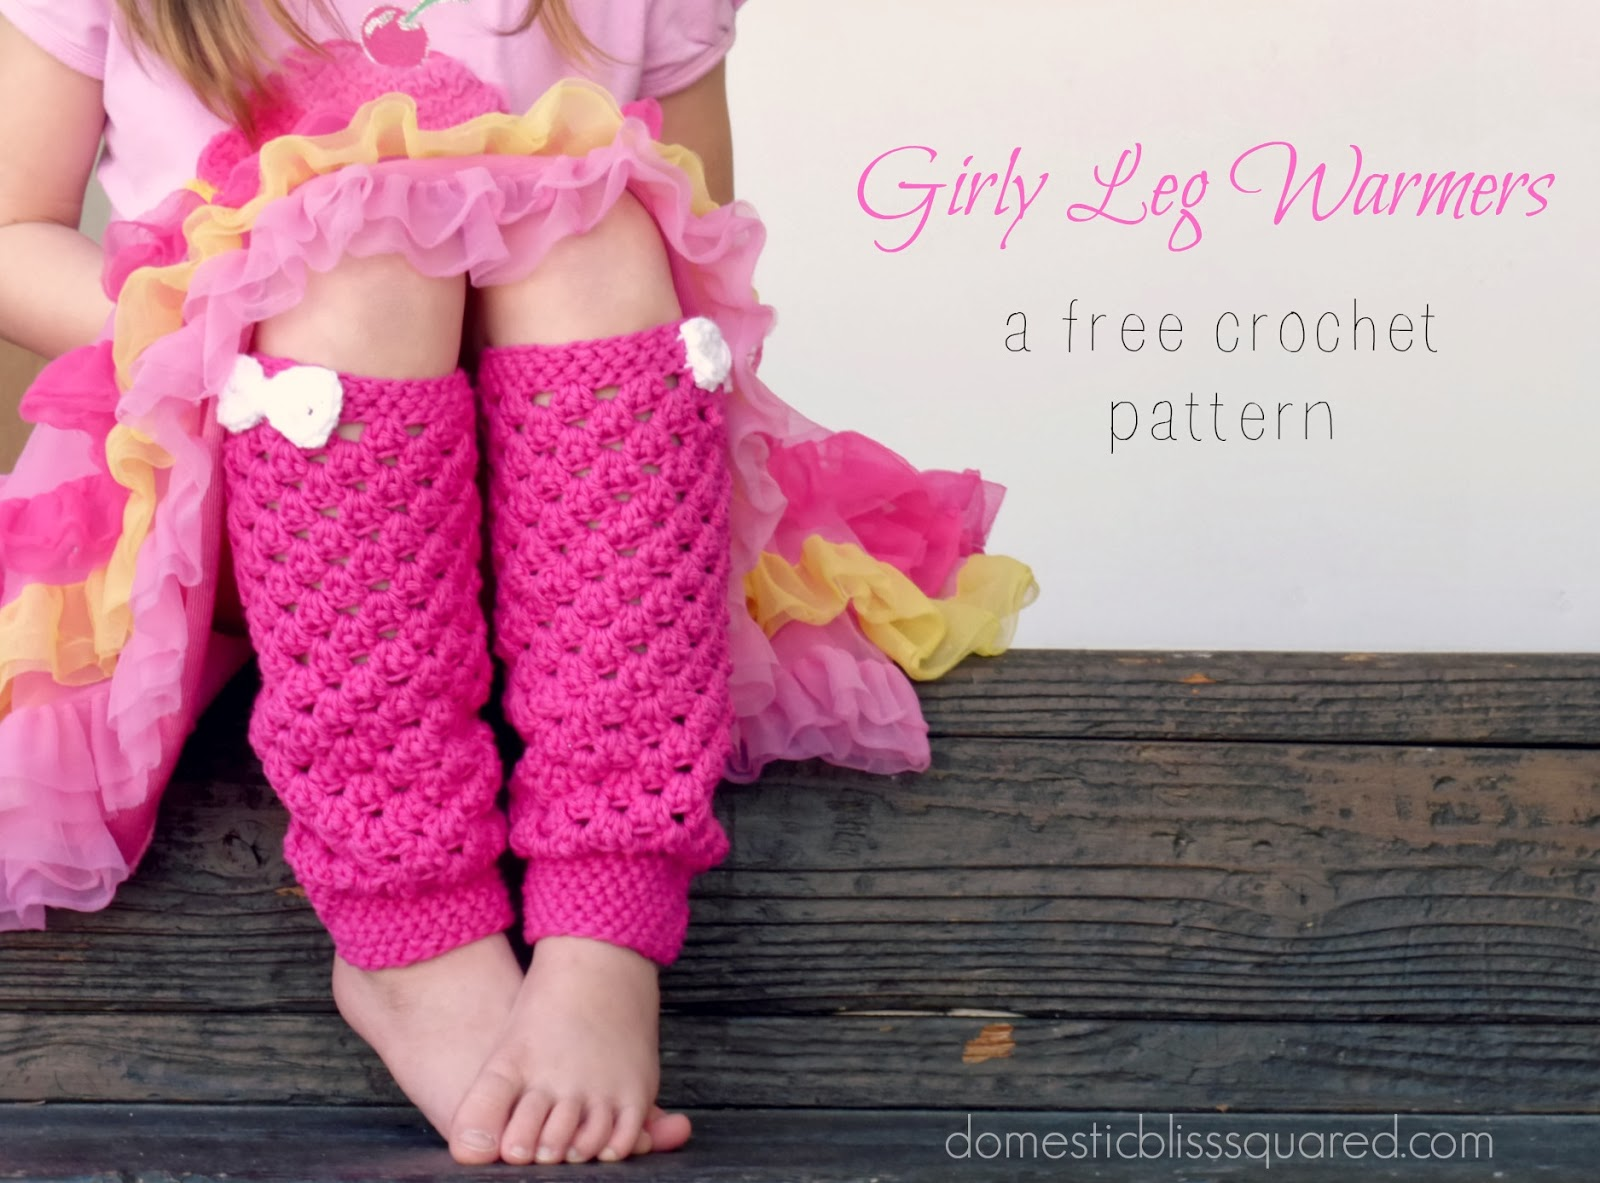 Crochet Free Patterns For Leg Warmers : Girls Crochet Leg Warmer Patterns gnewsinfo.com